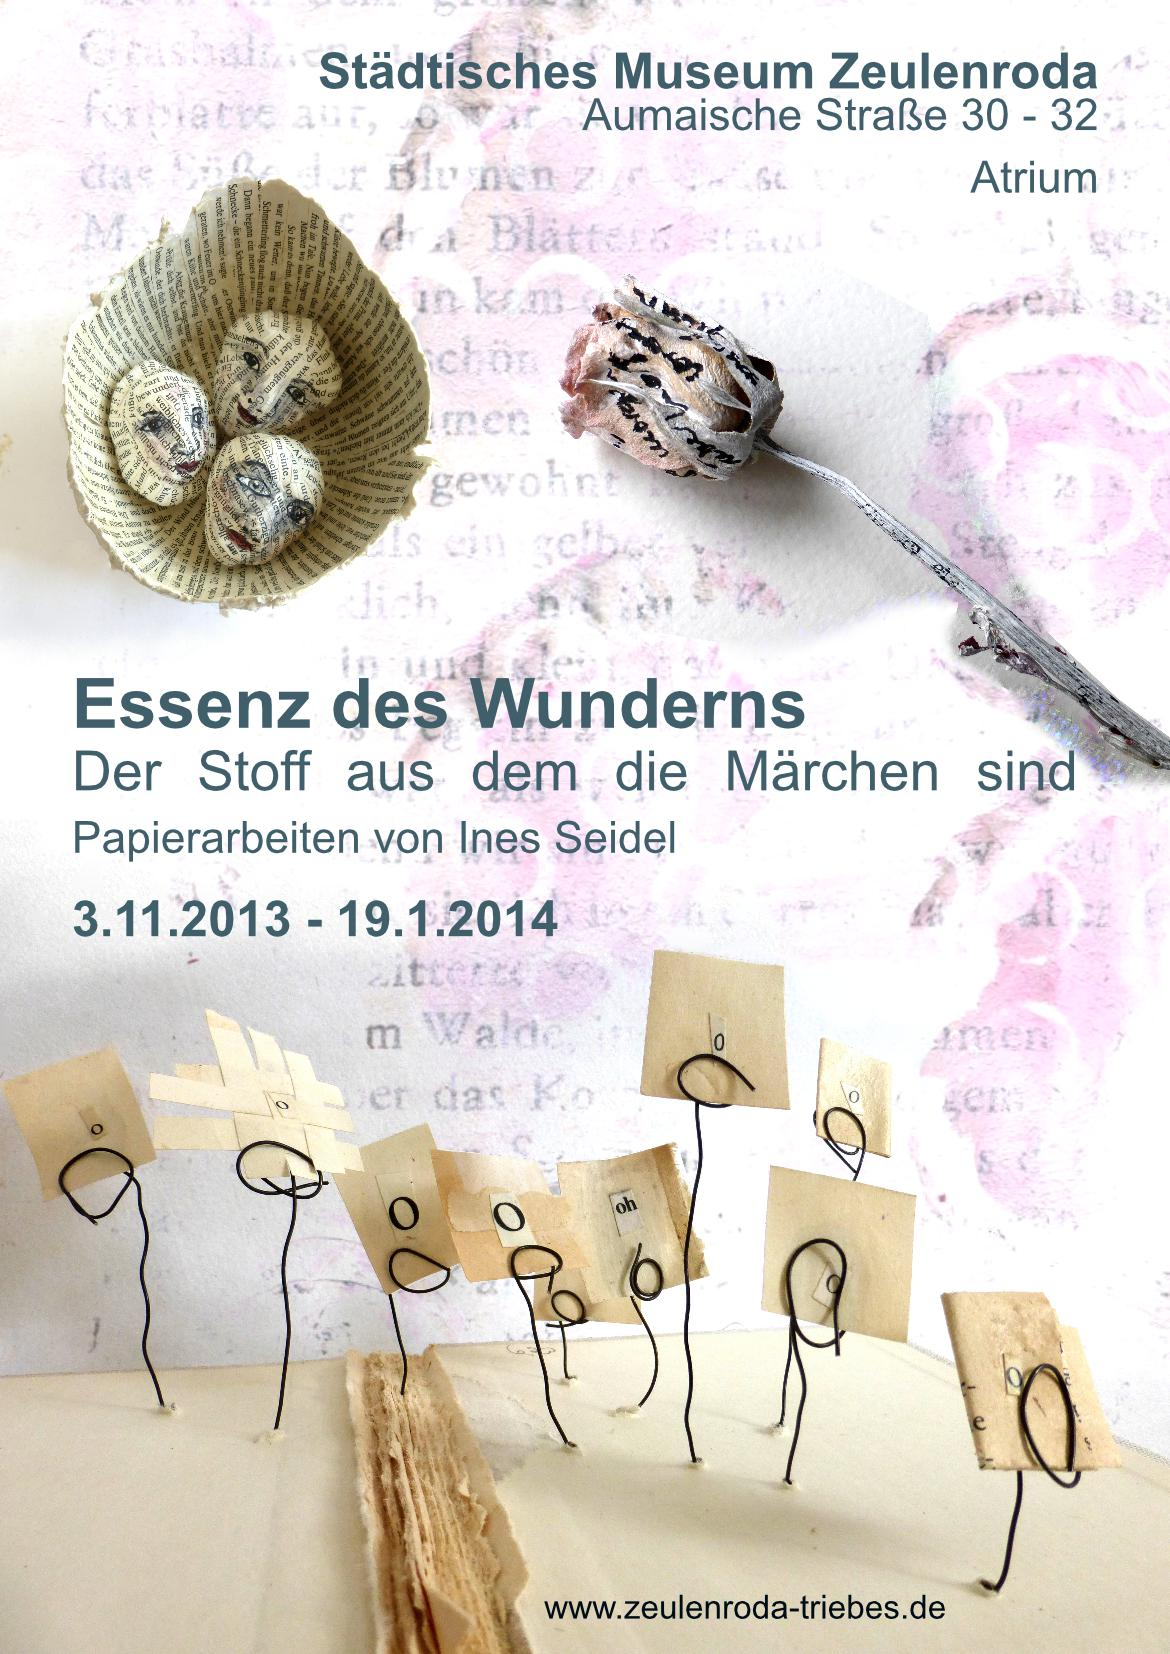 Essence of Wondering - Exhibition